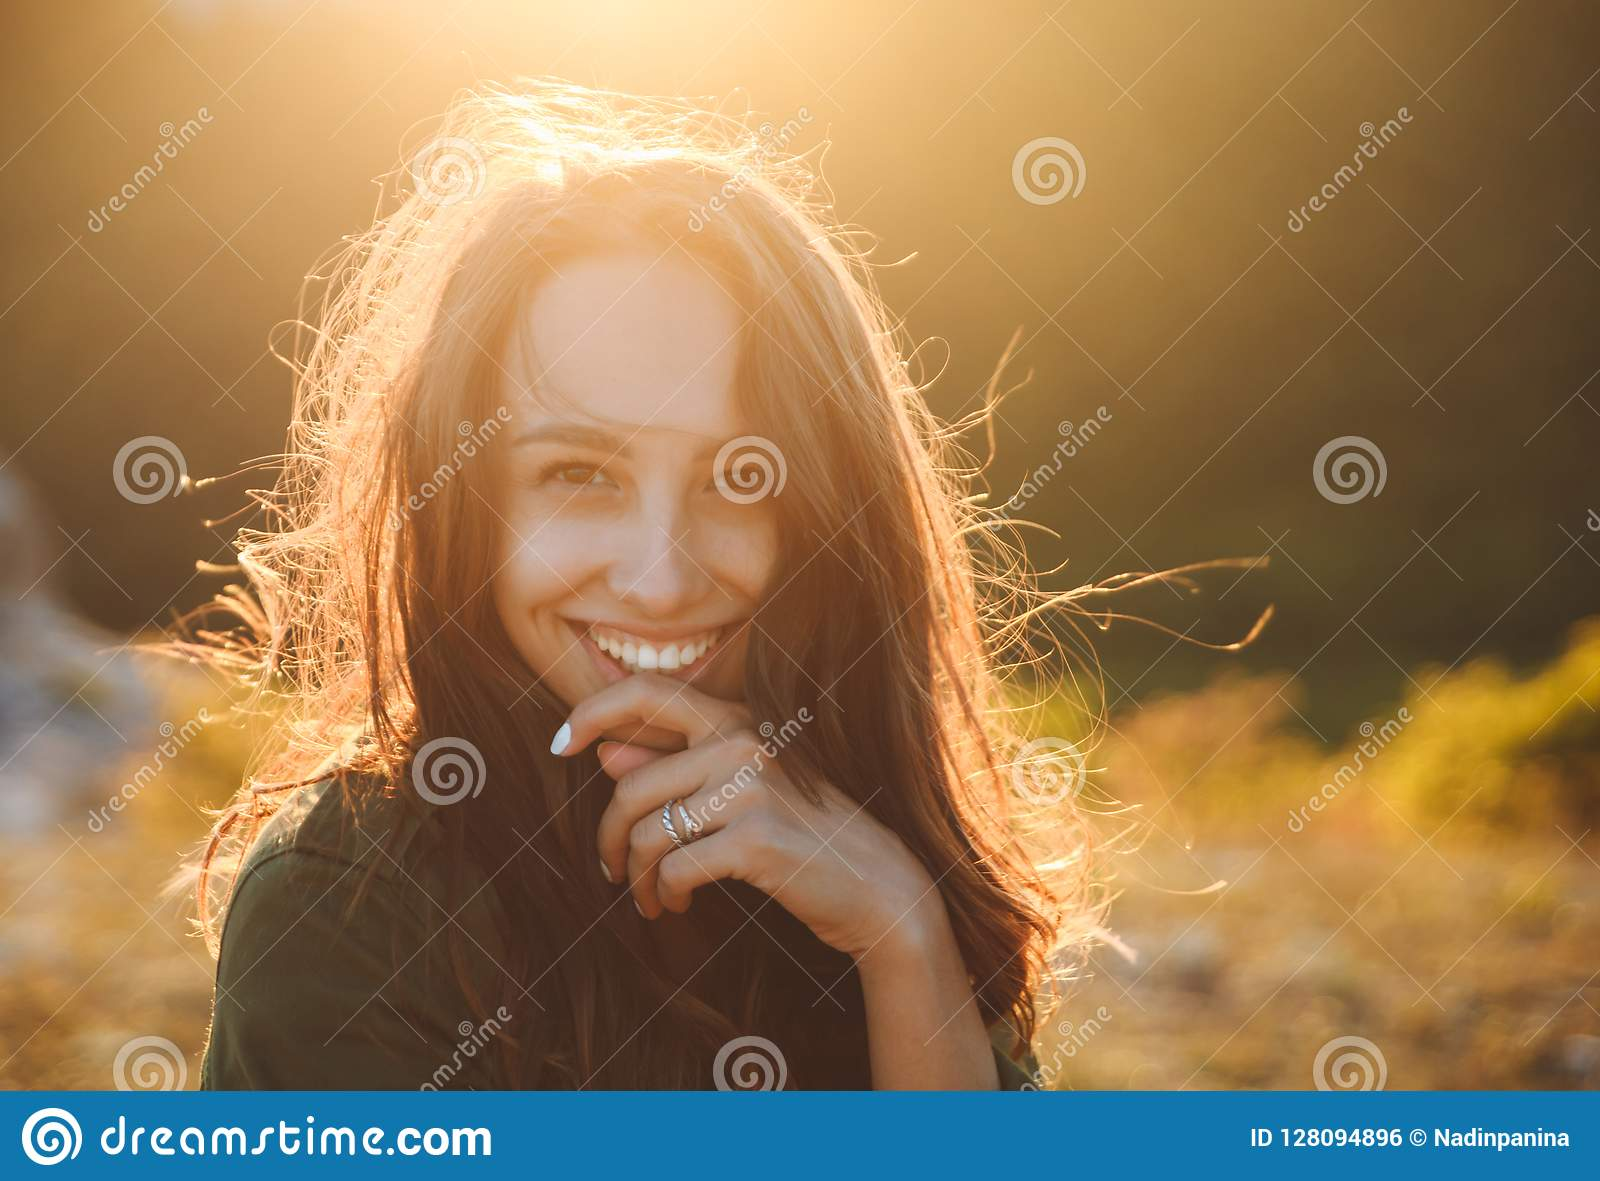 Beautiful young woman smiling on beautiful landscape in sunset time.